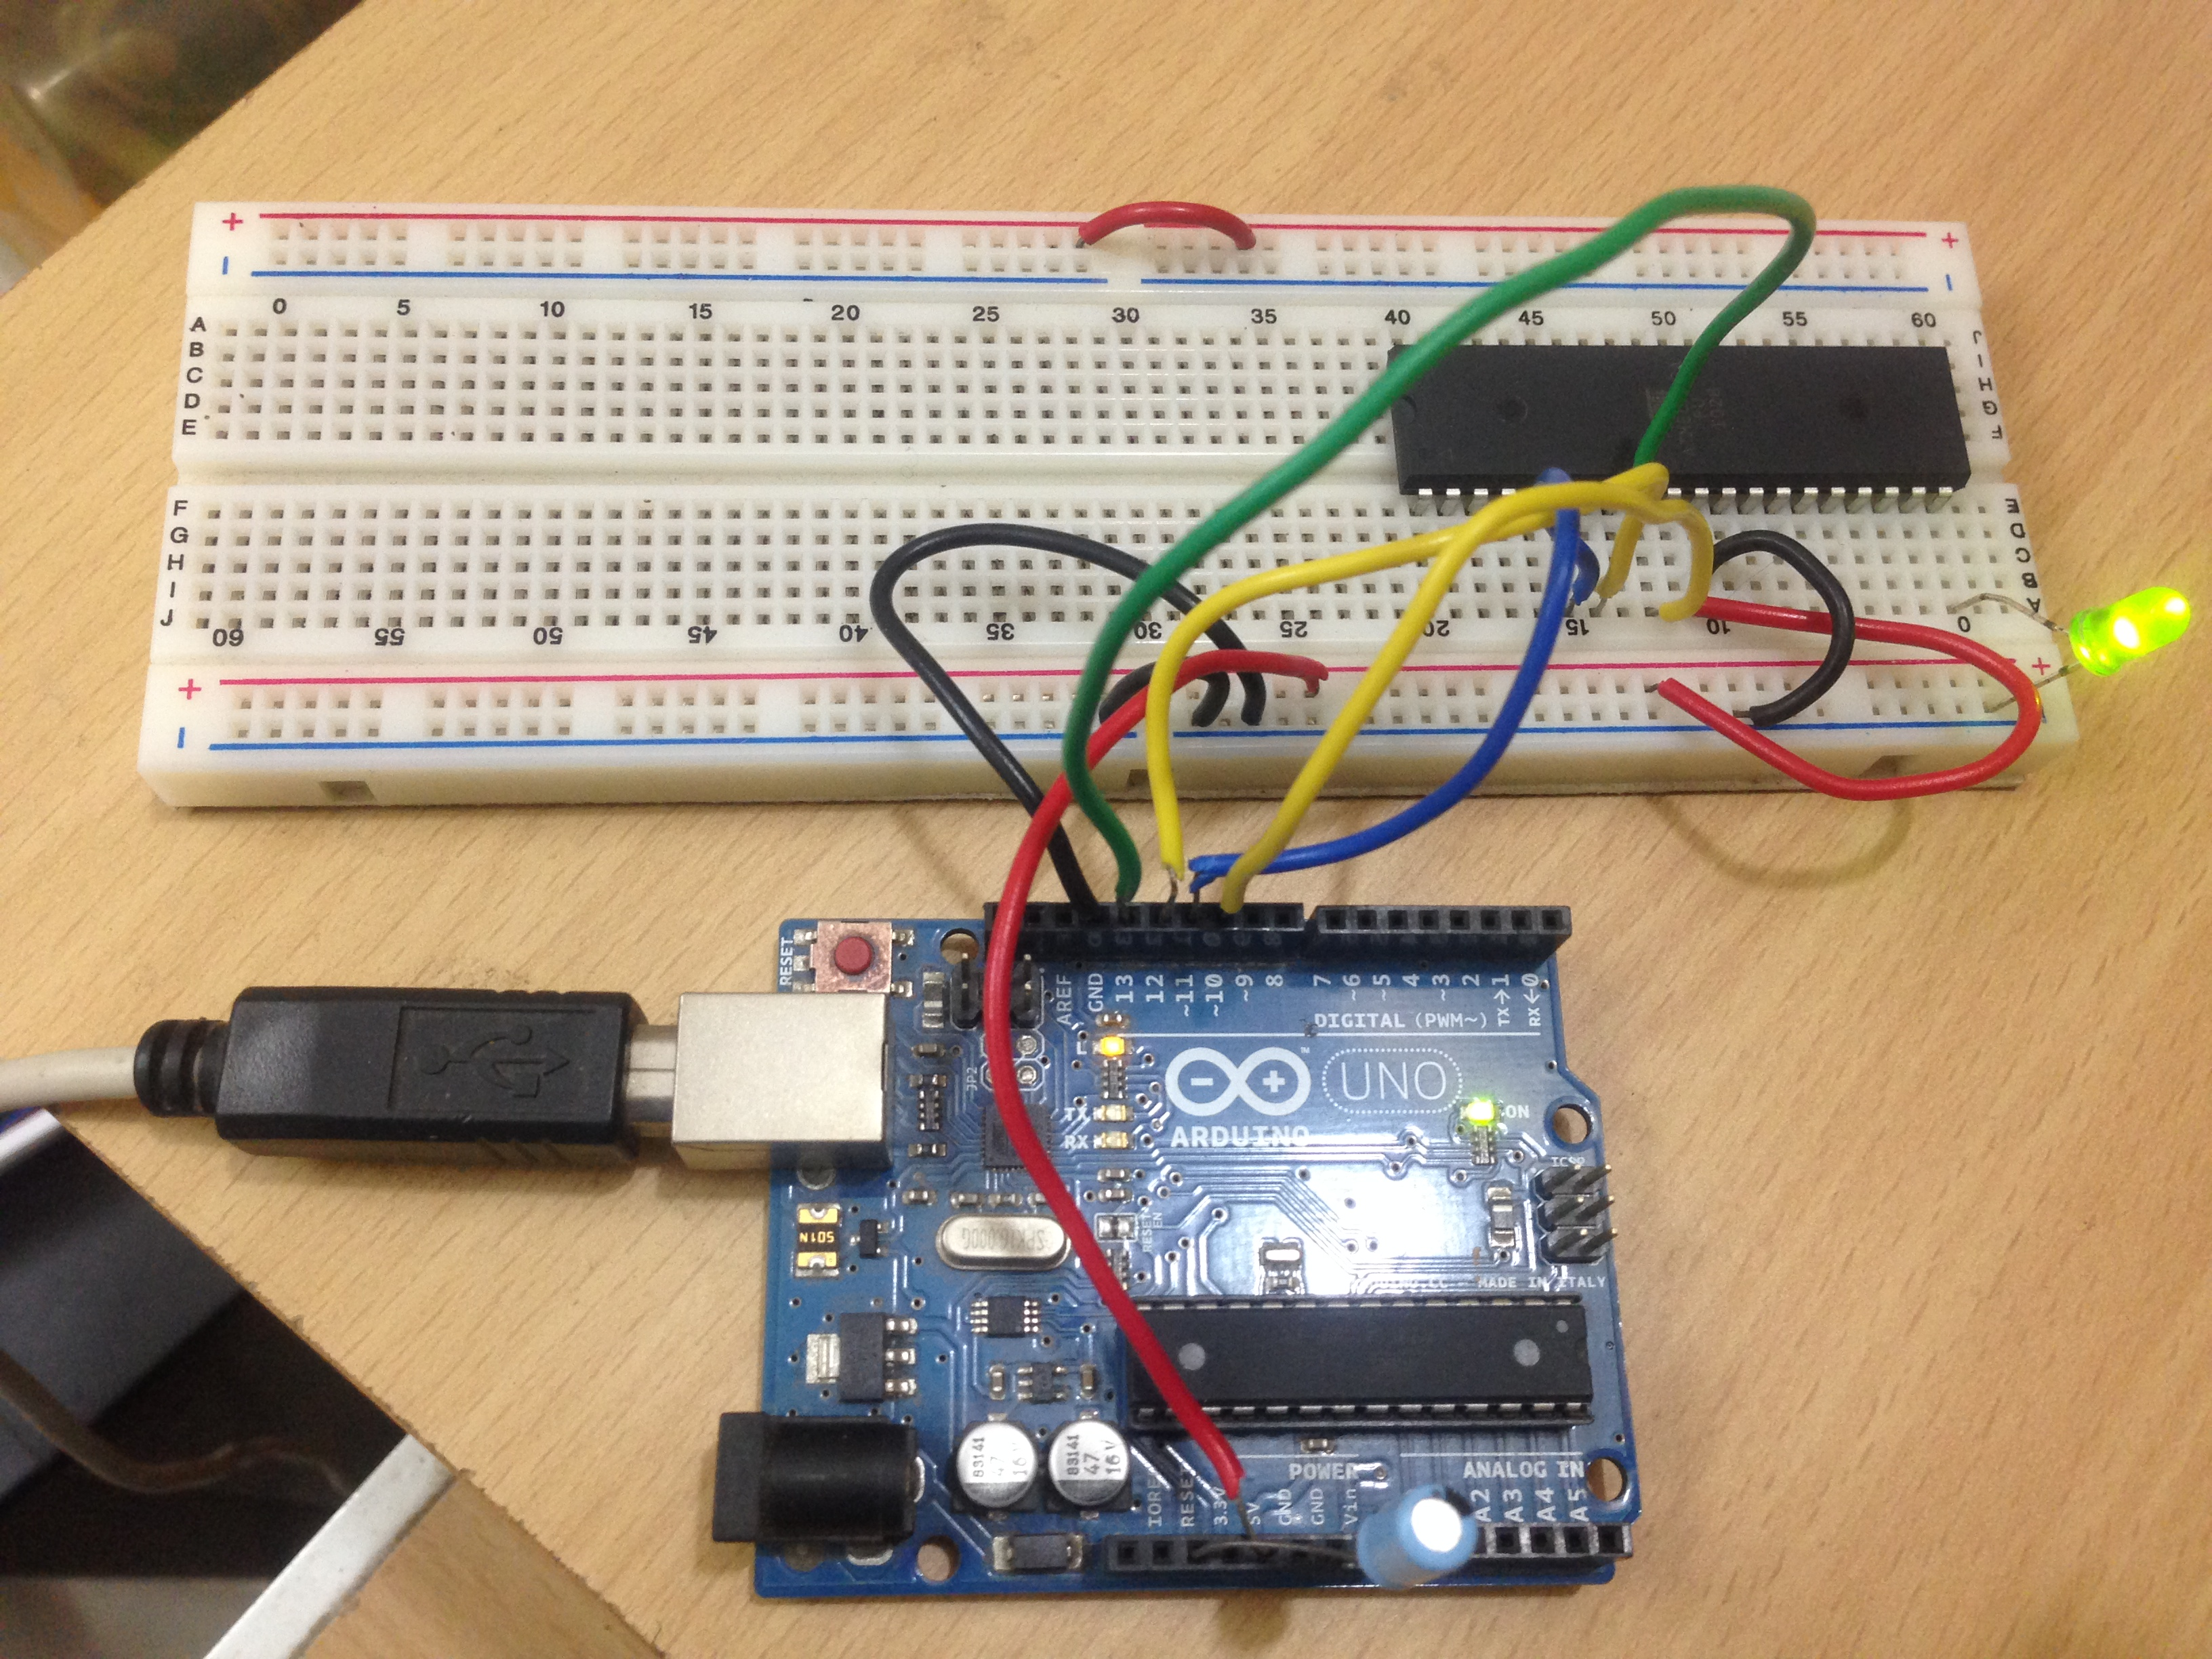 Use arduino as an isp programmer to program non